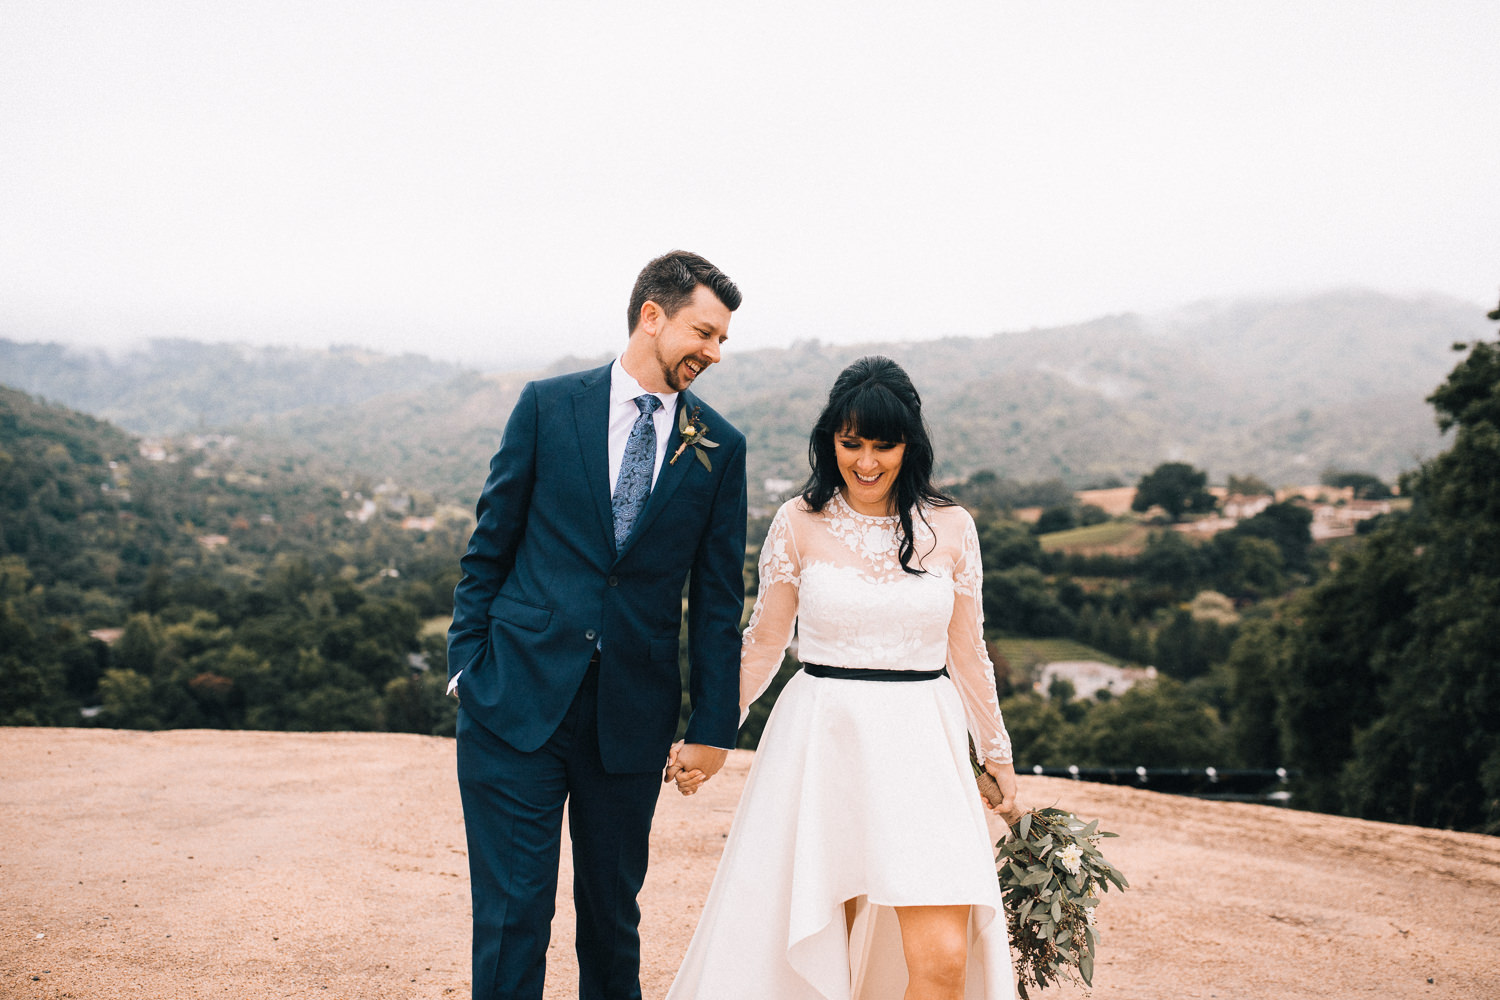 2019_05_ 182019.05.19 Lisa + Eddie South Bay Wedding Blog Photos Edited For Web 0108.jpg